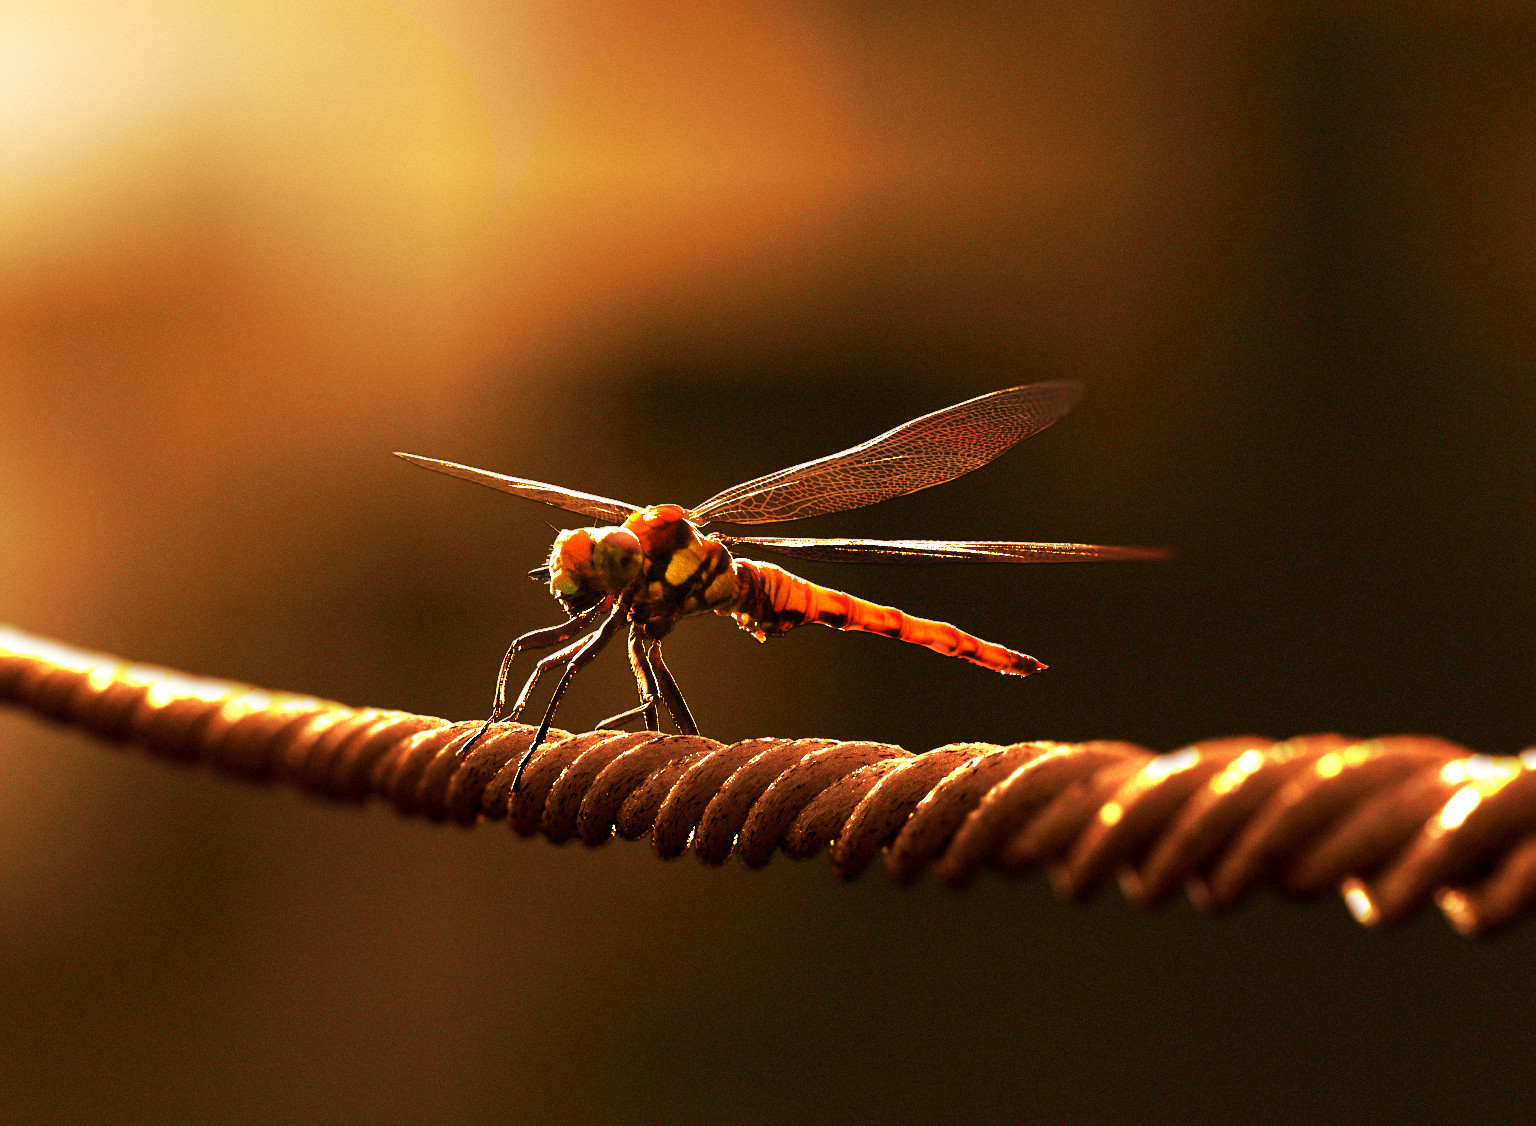 Dragonflies, as red as sunset.